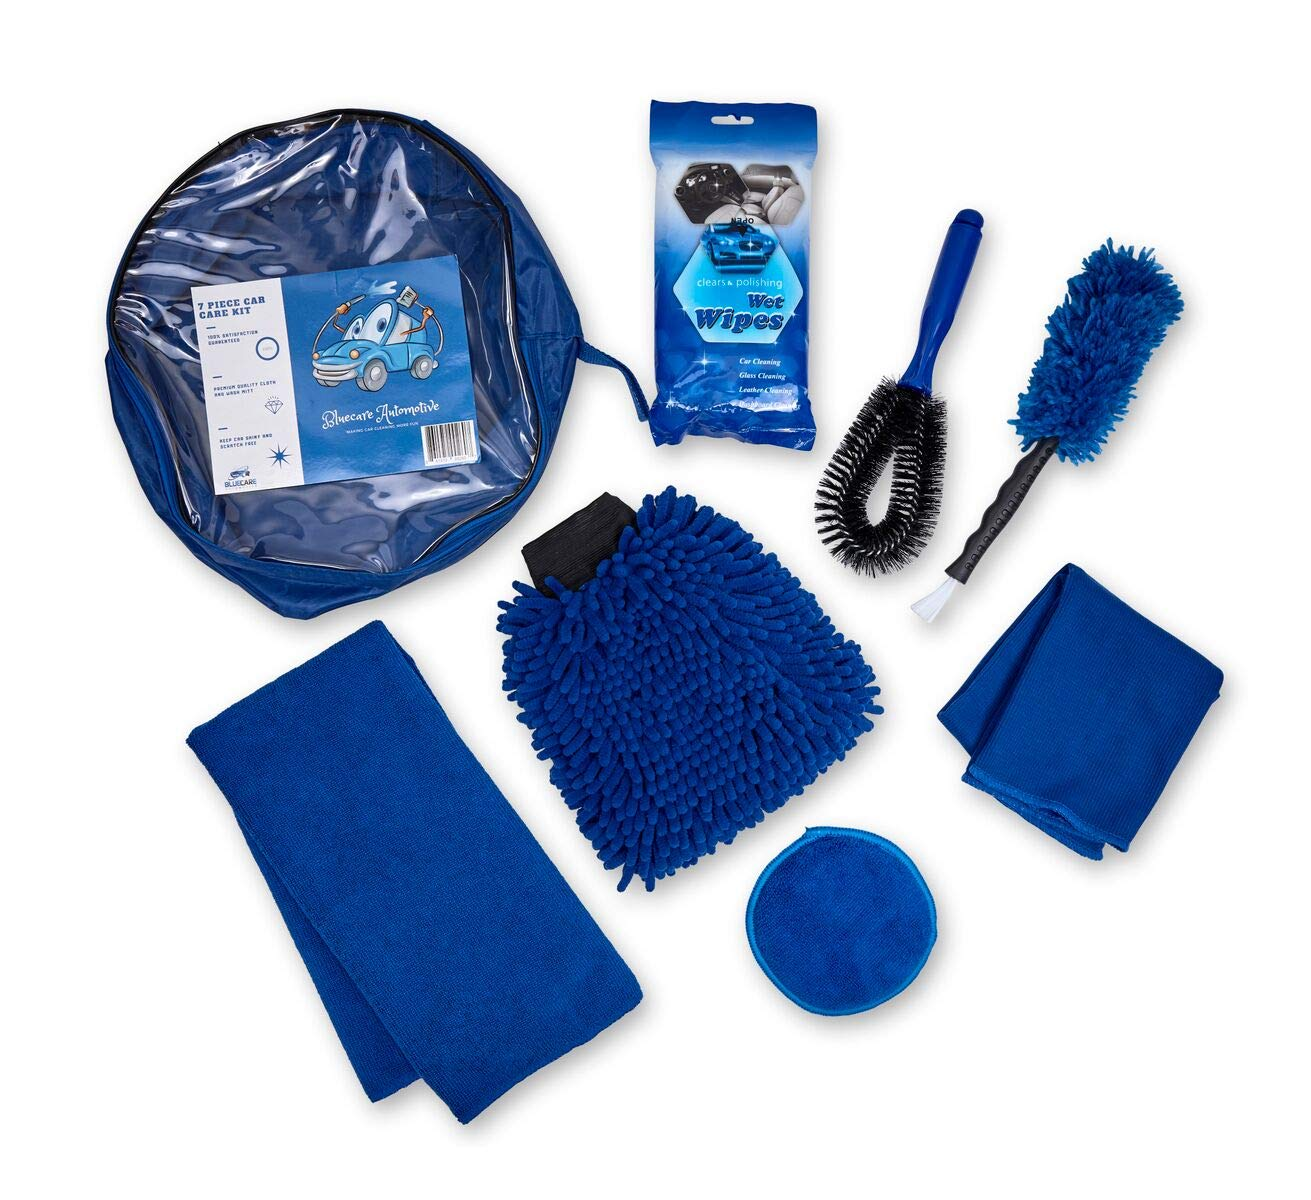 BlueCare Automotive Car Cleaning Tool Kit with Portable Bag | 7 Piece | Wash Mitt | Car Vent Brush | Wash Sponge | Tire Brush | Wax Applicator | Microfiber Cloth with Free Car Wipes